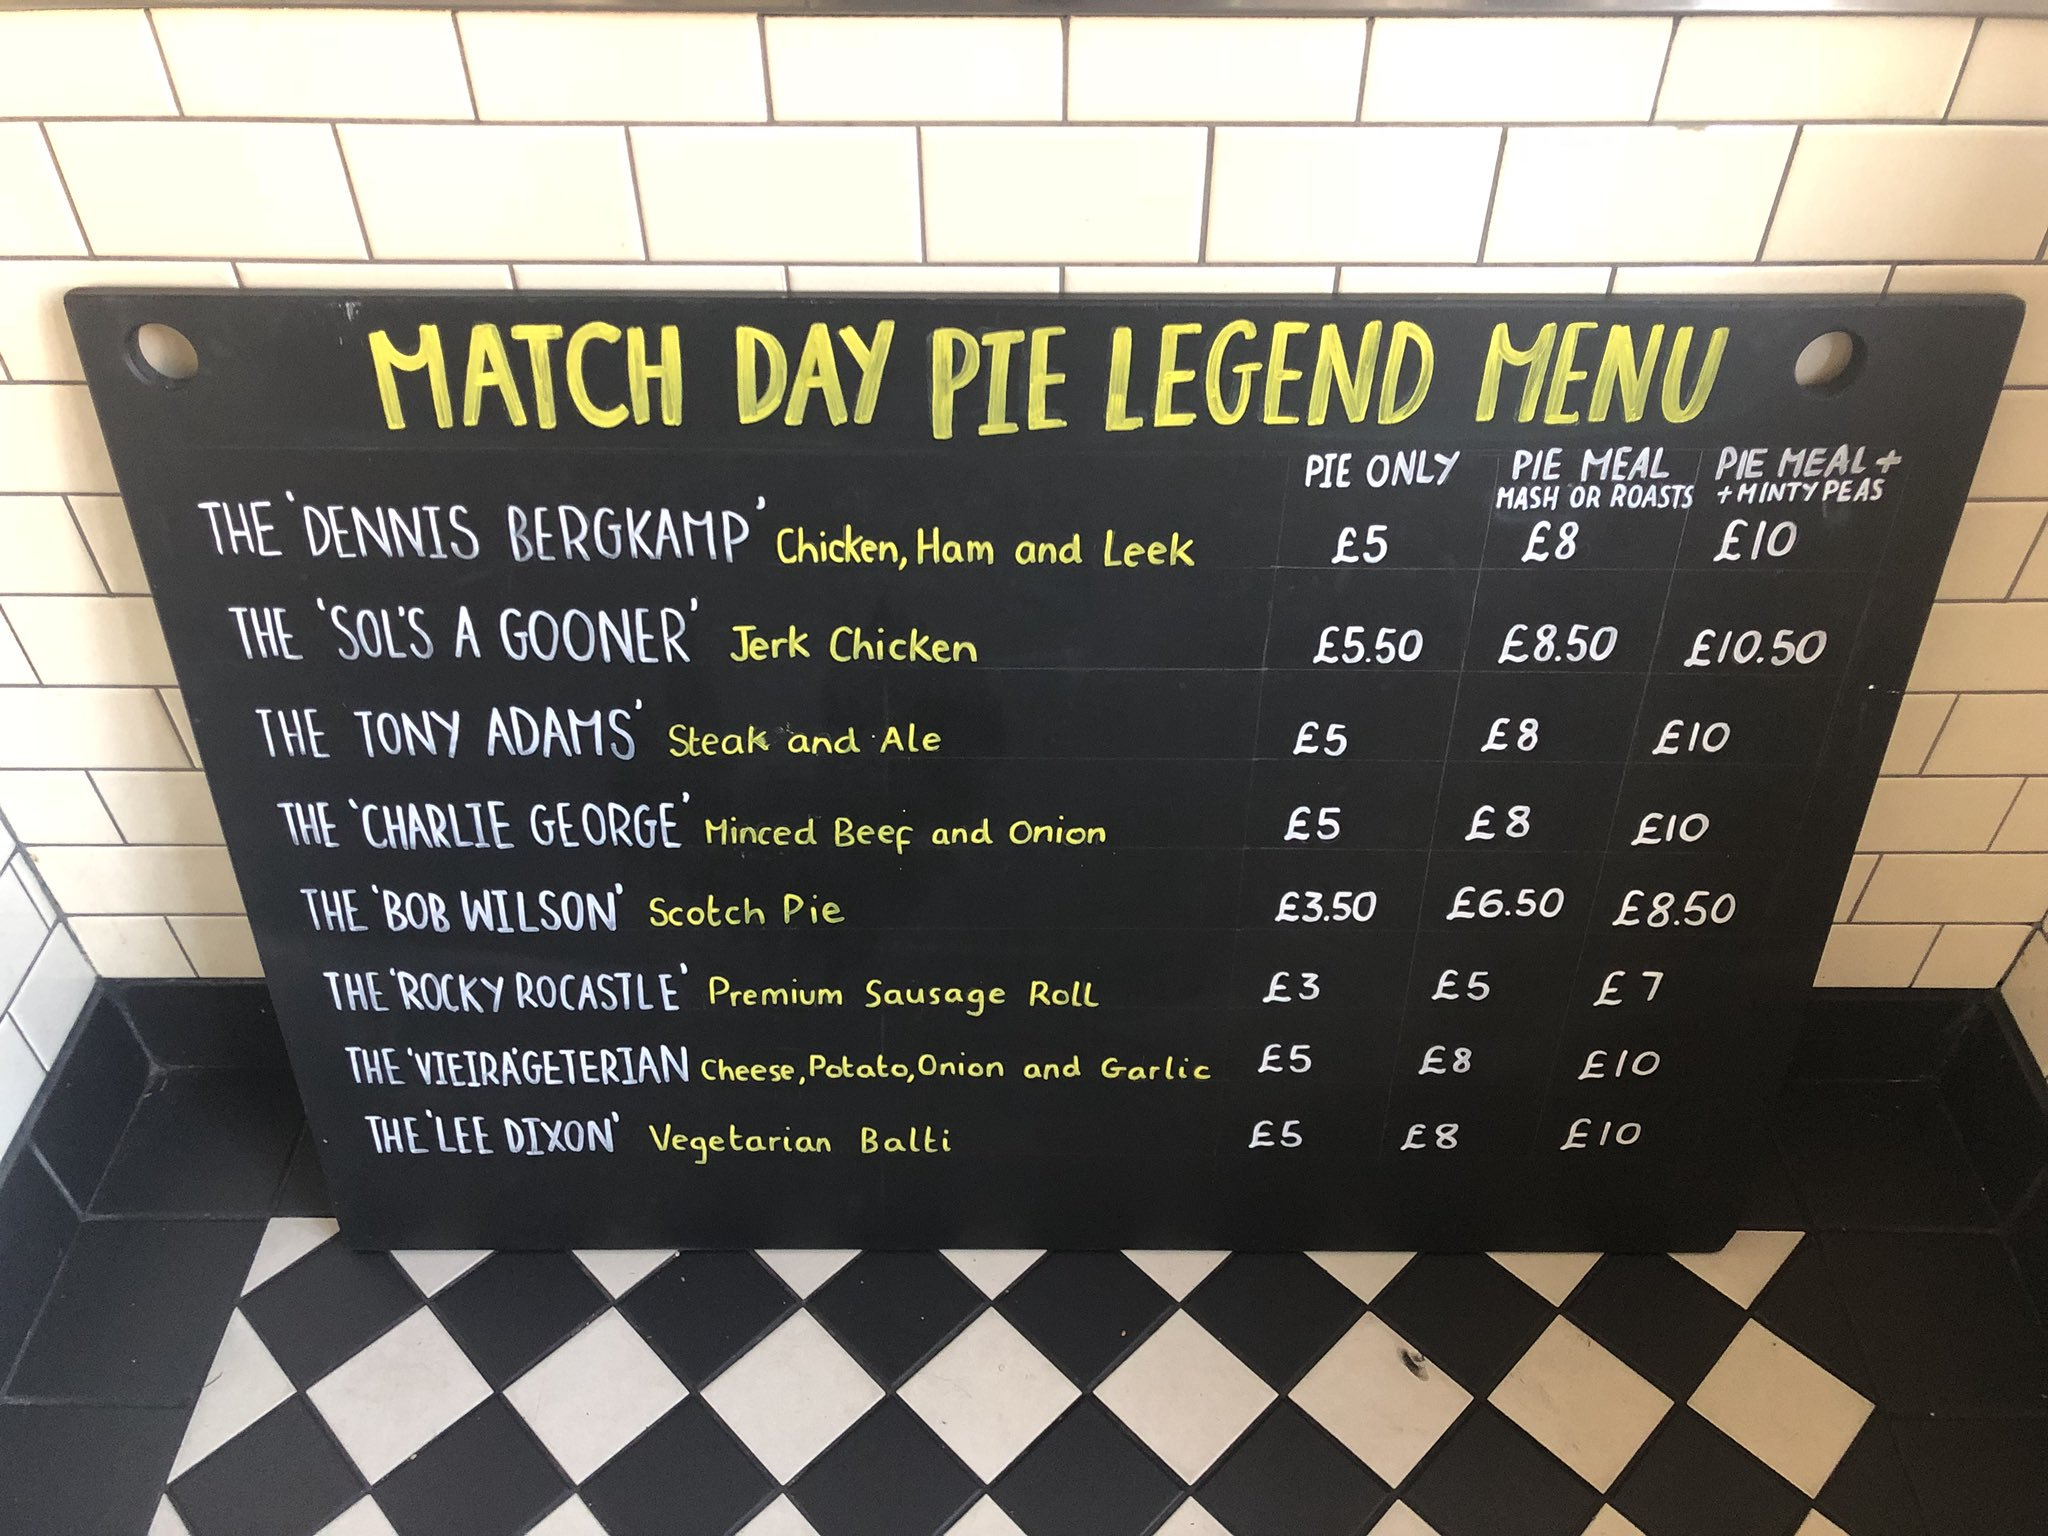 PieLegend Menu